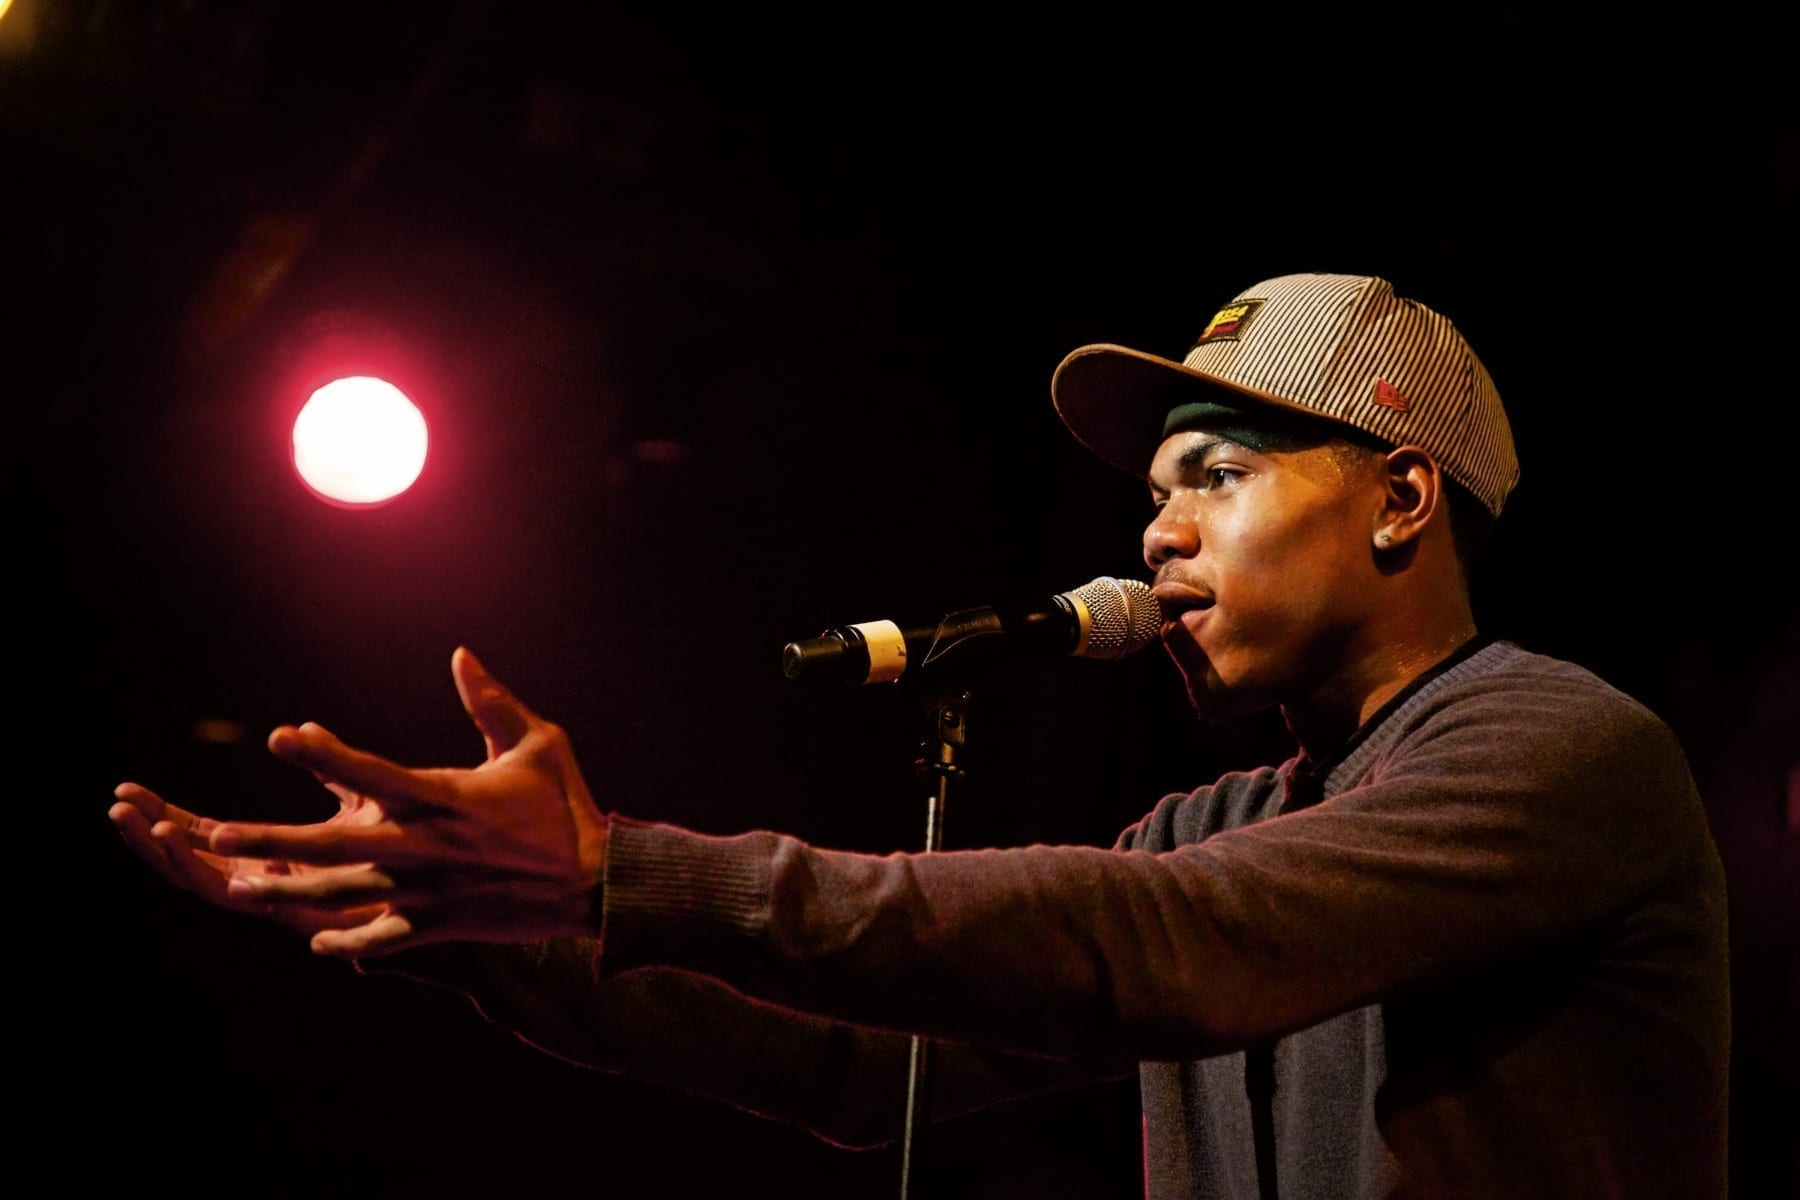 Chance-The-Rapper-CMJ-2012-Photo-by-Crystal-Huffman